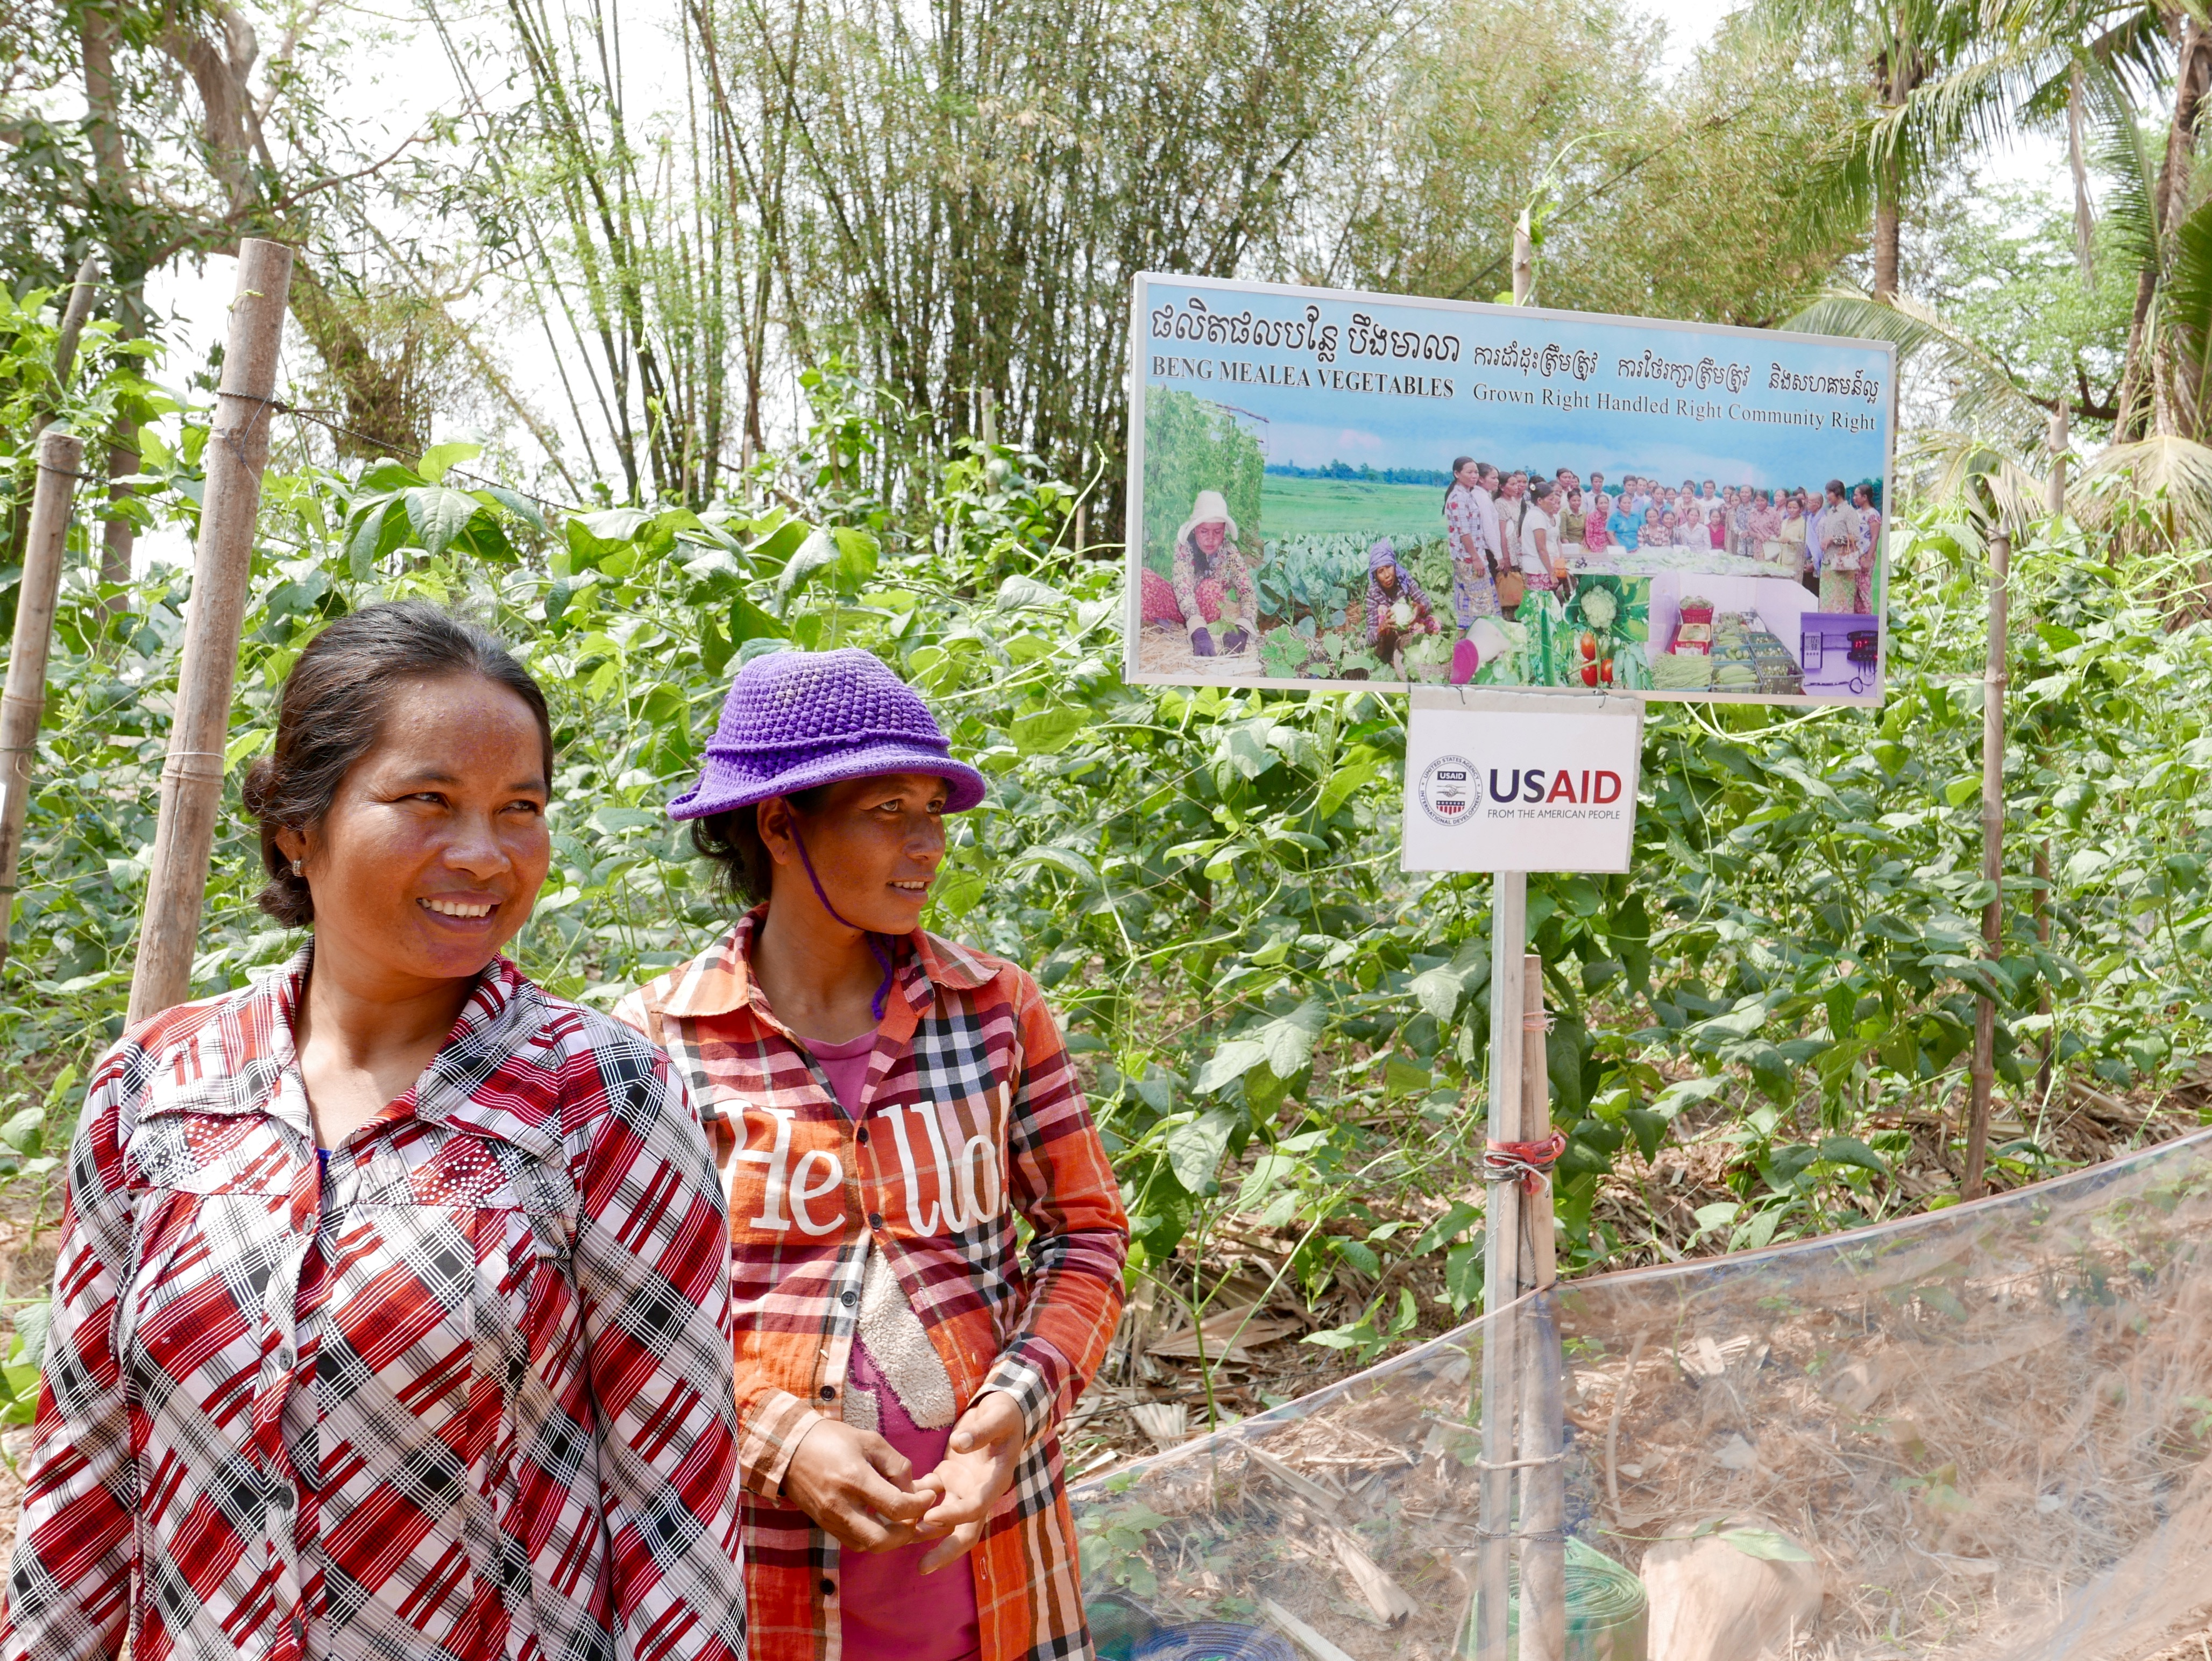 Women farmers growing vegetables with conservation agriculture practices and drip irrigation in Cambodia, with project sign and USAID logo.